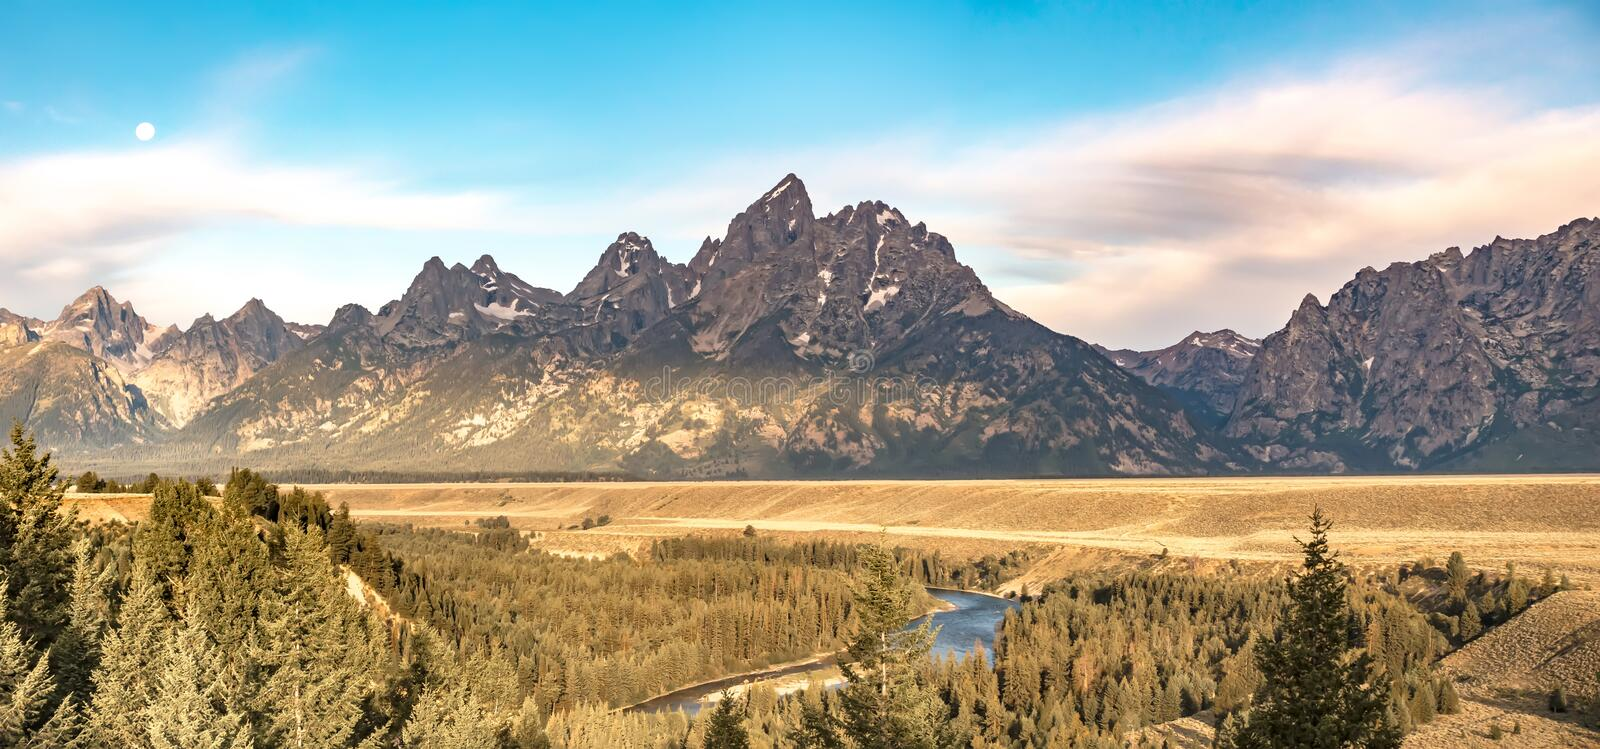 Grand tetons view from snake river overlook stock photo